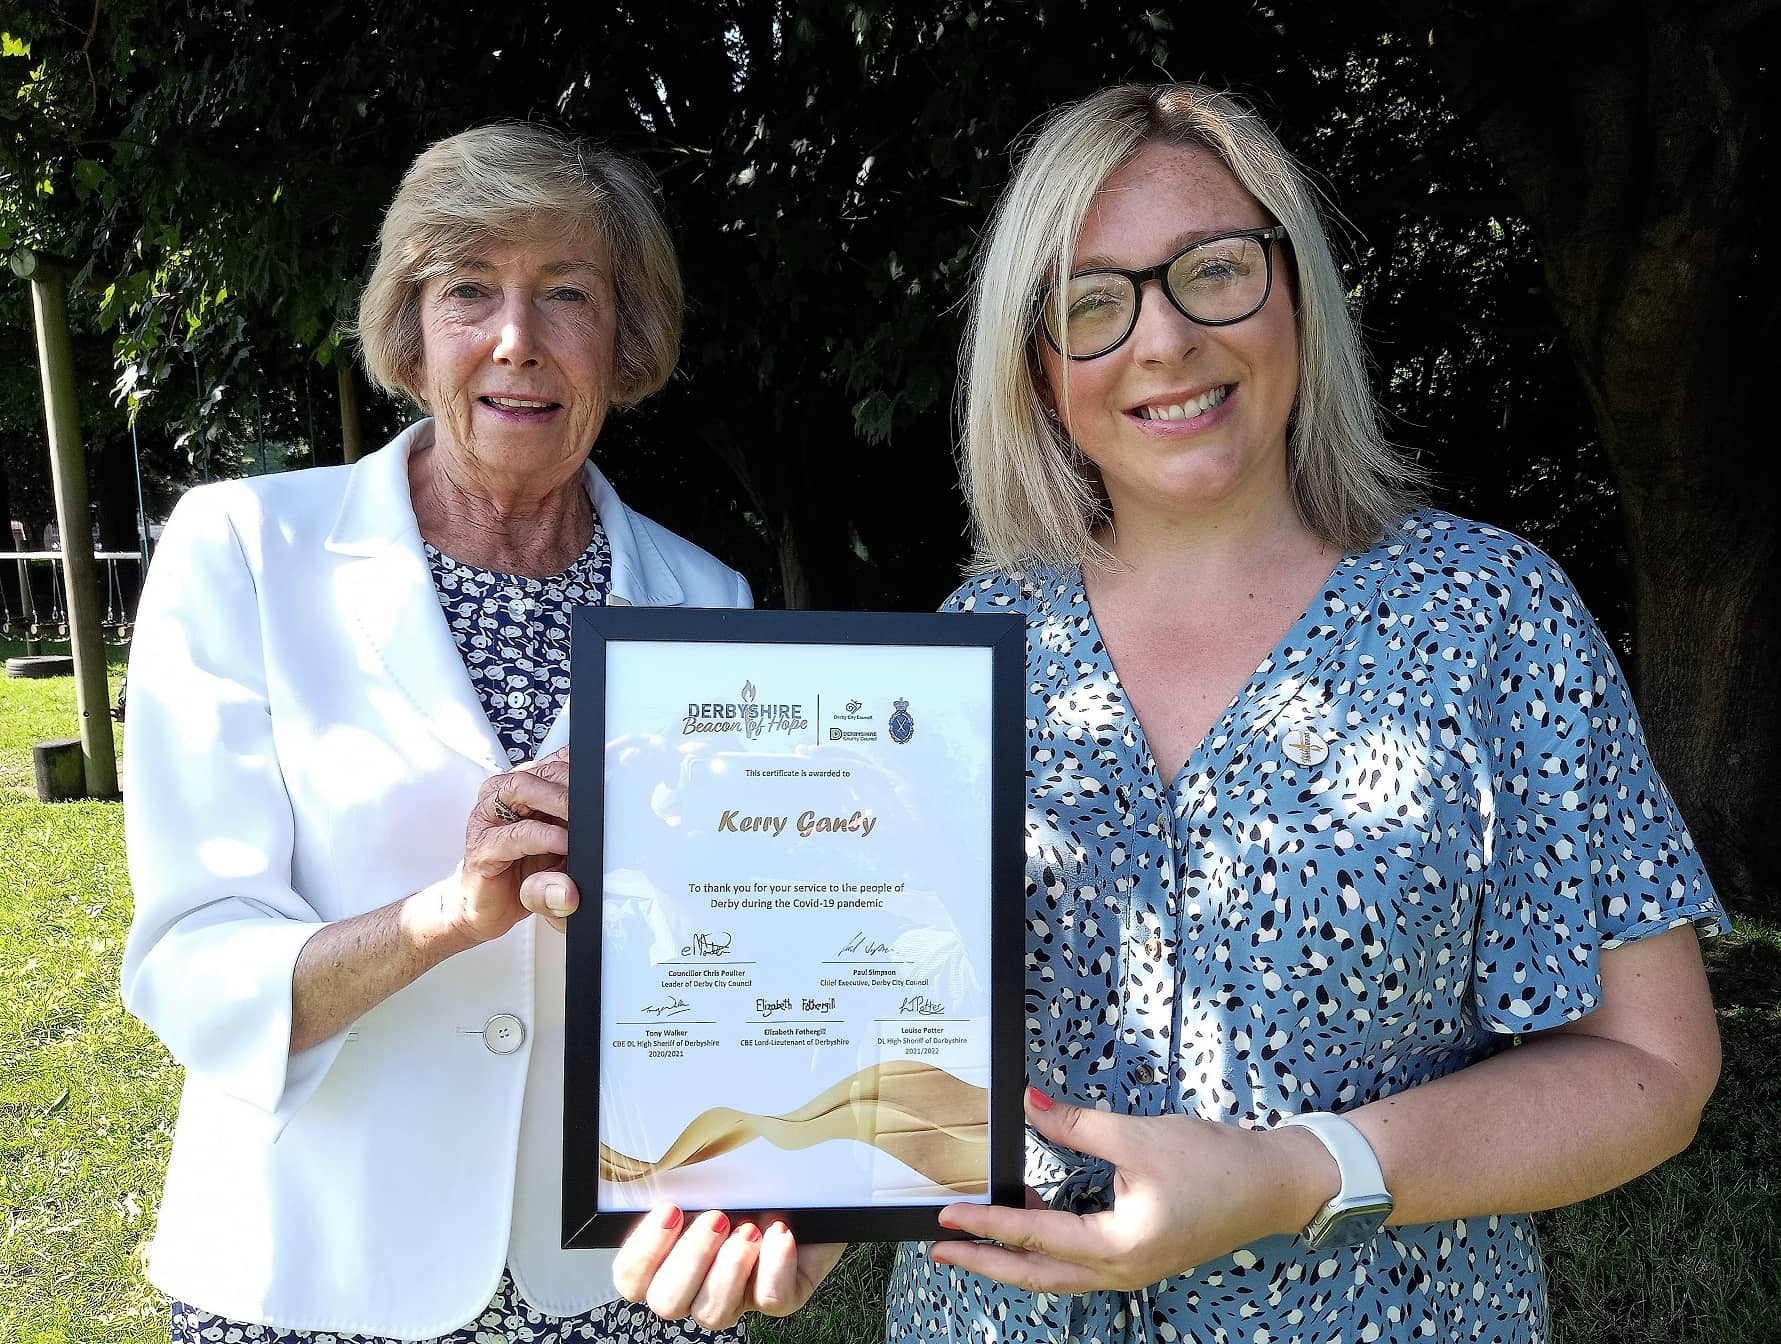 Penguin PR's community hero Kerry is at the heart of the story as she receives a Beacon of Hope Award